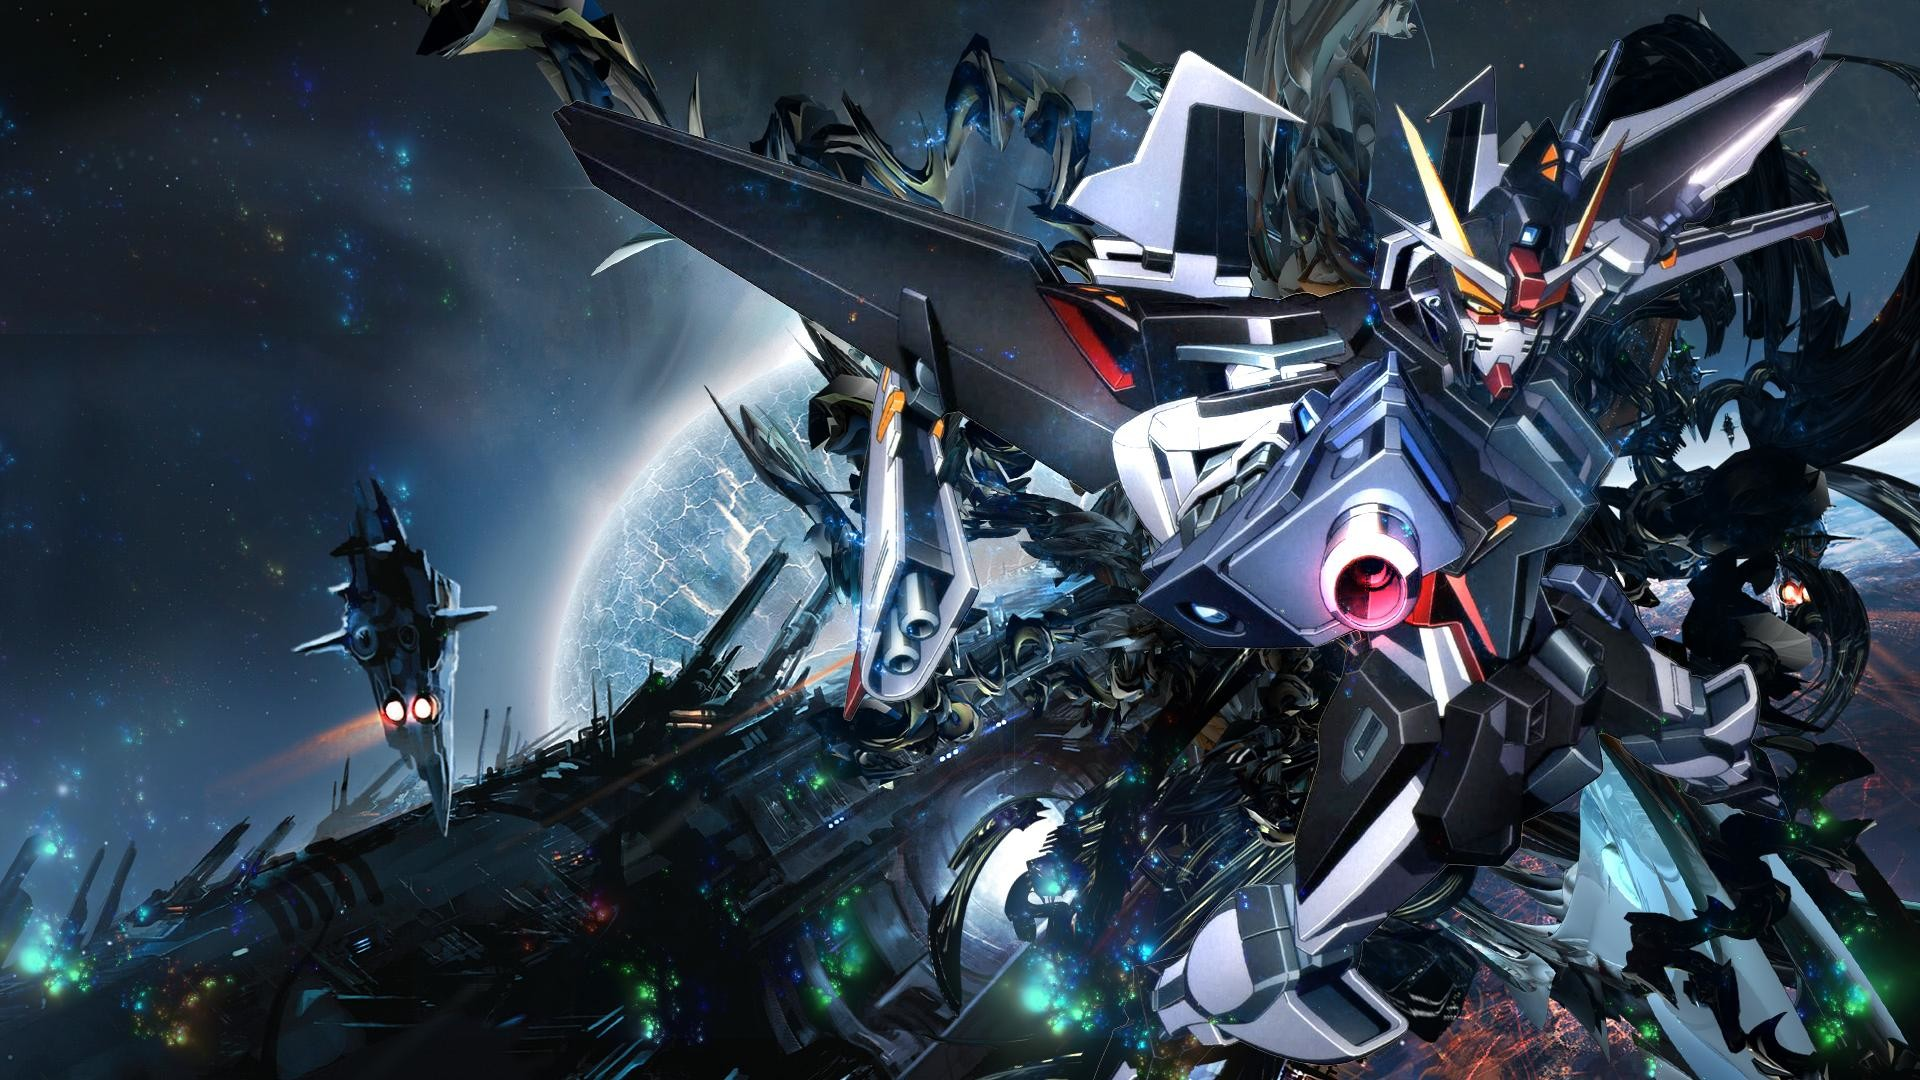 Hd Wallpapers Best Collection Gundam Wallpapers 1080p 67 Images